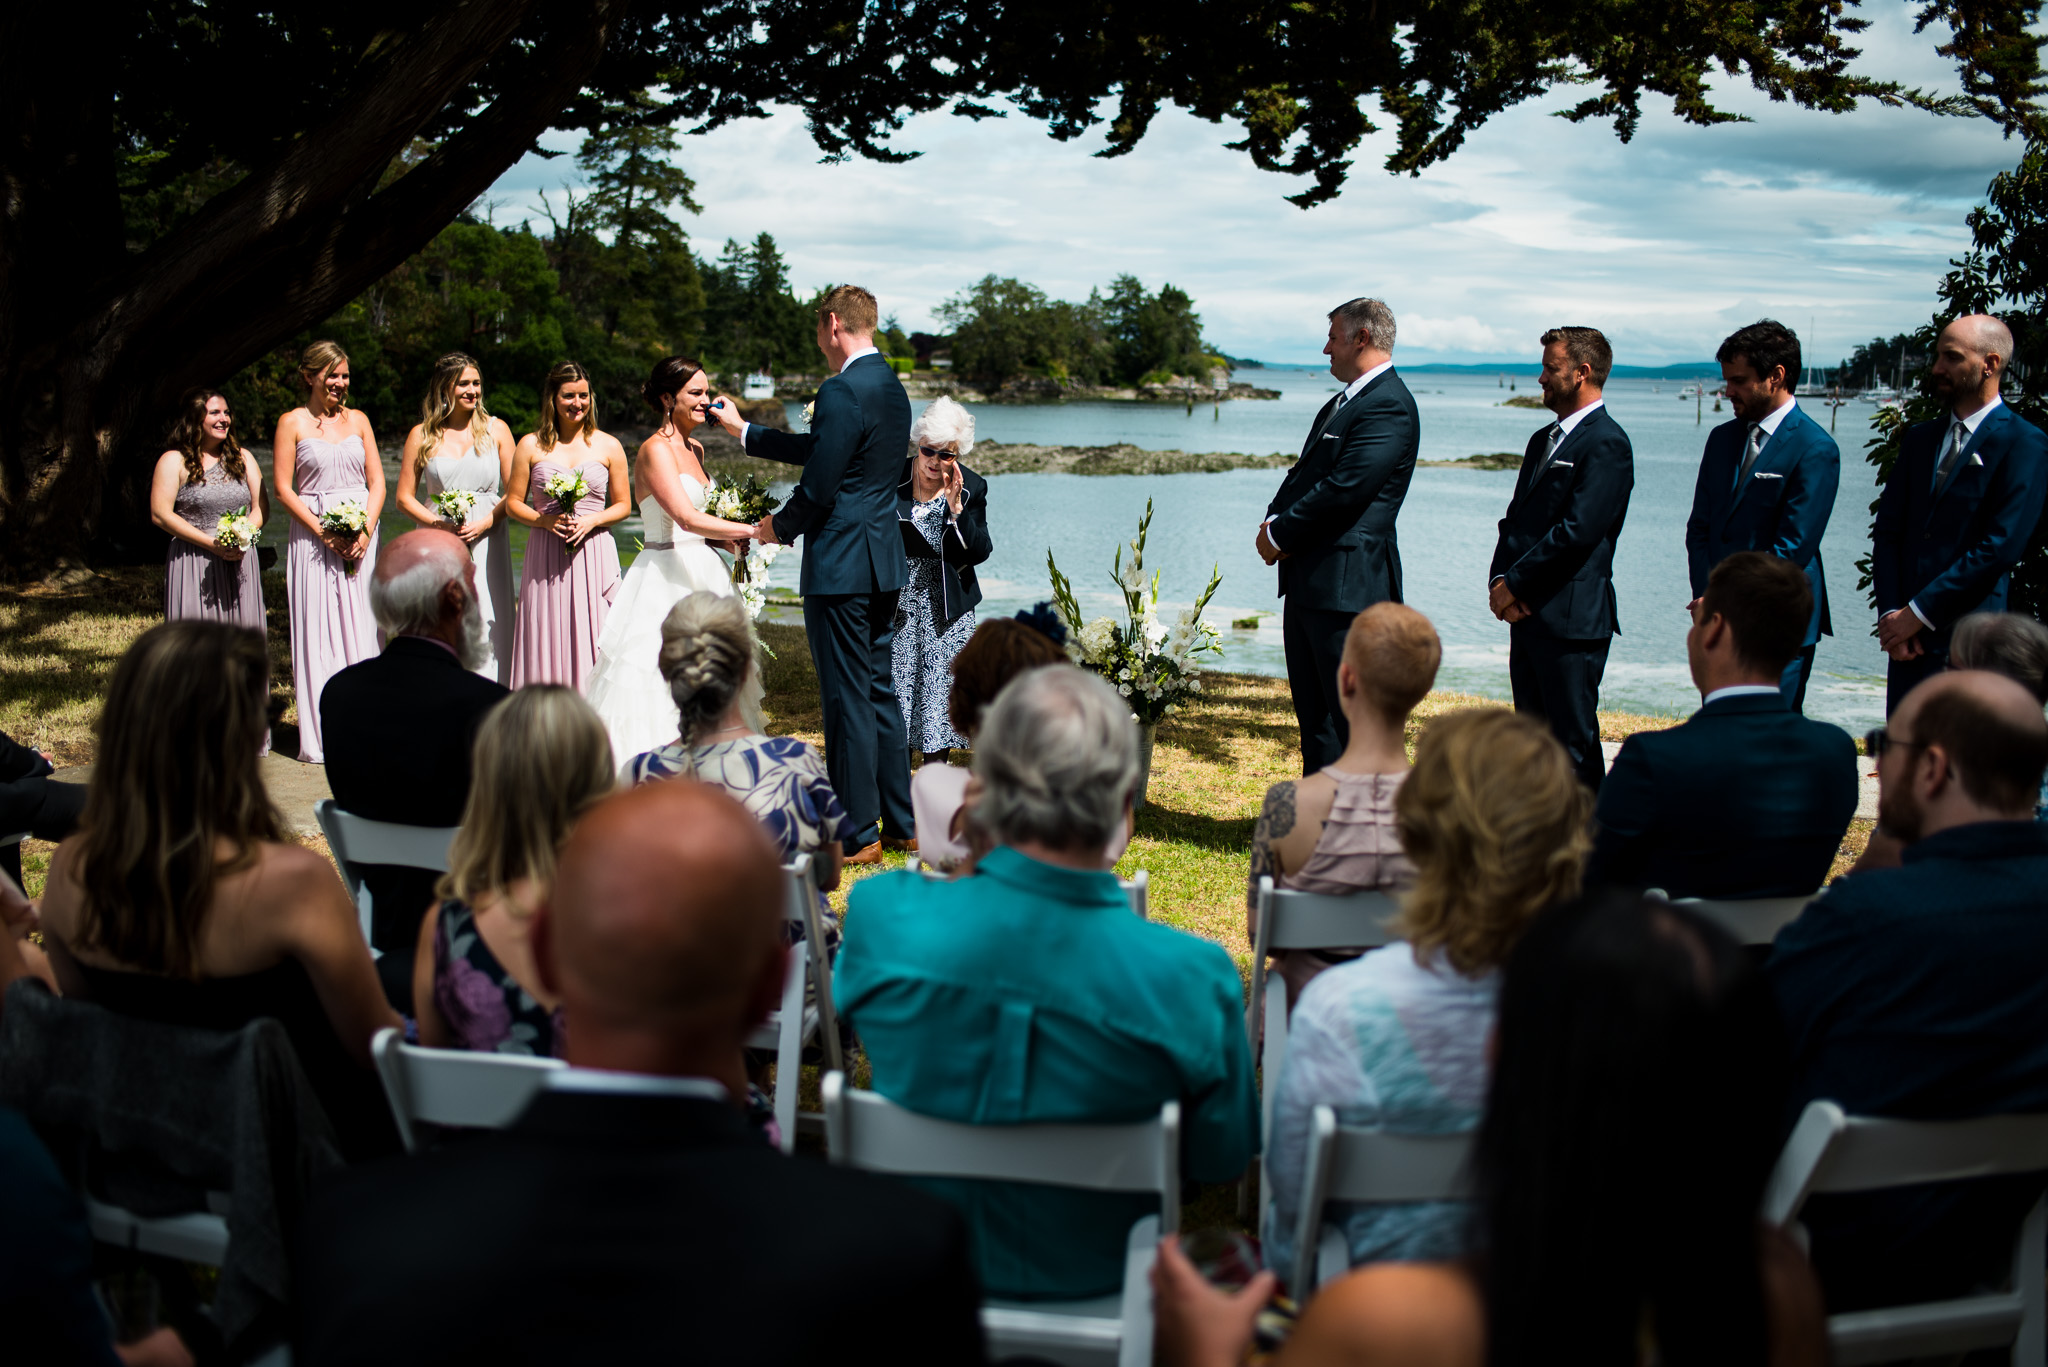 victoria-wedding-photographers-North-Saanich-Yacht-Club-Wedding-26.jpg